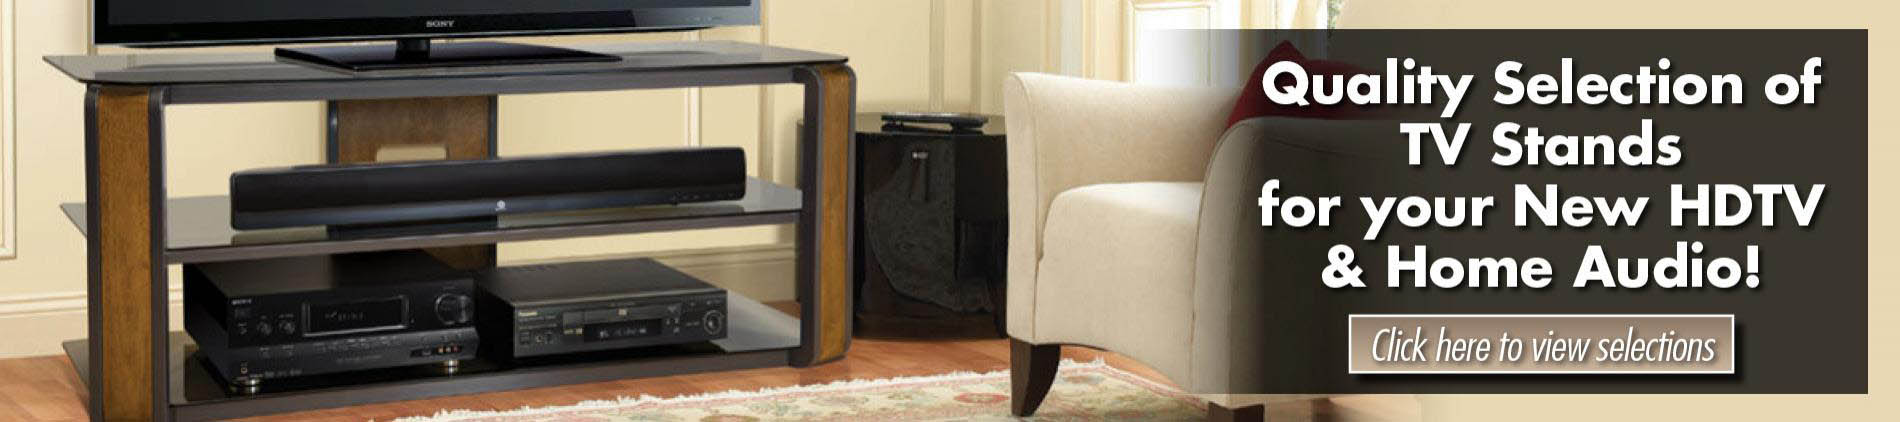 Quality TV Stands